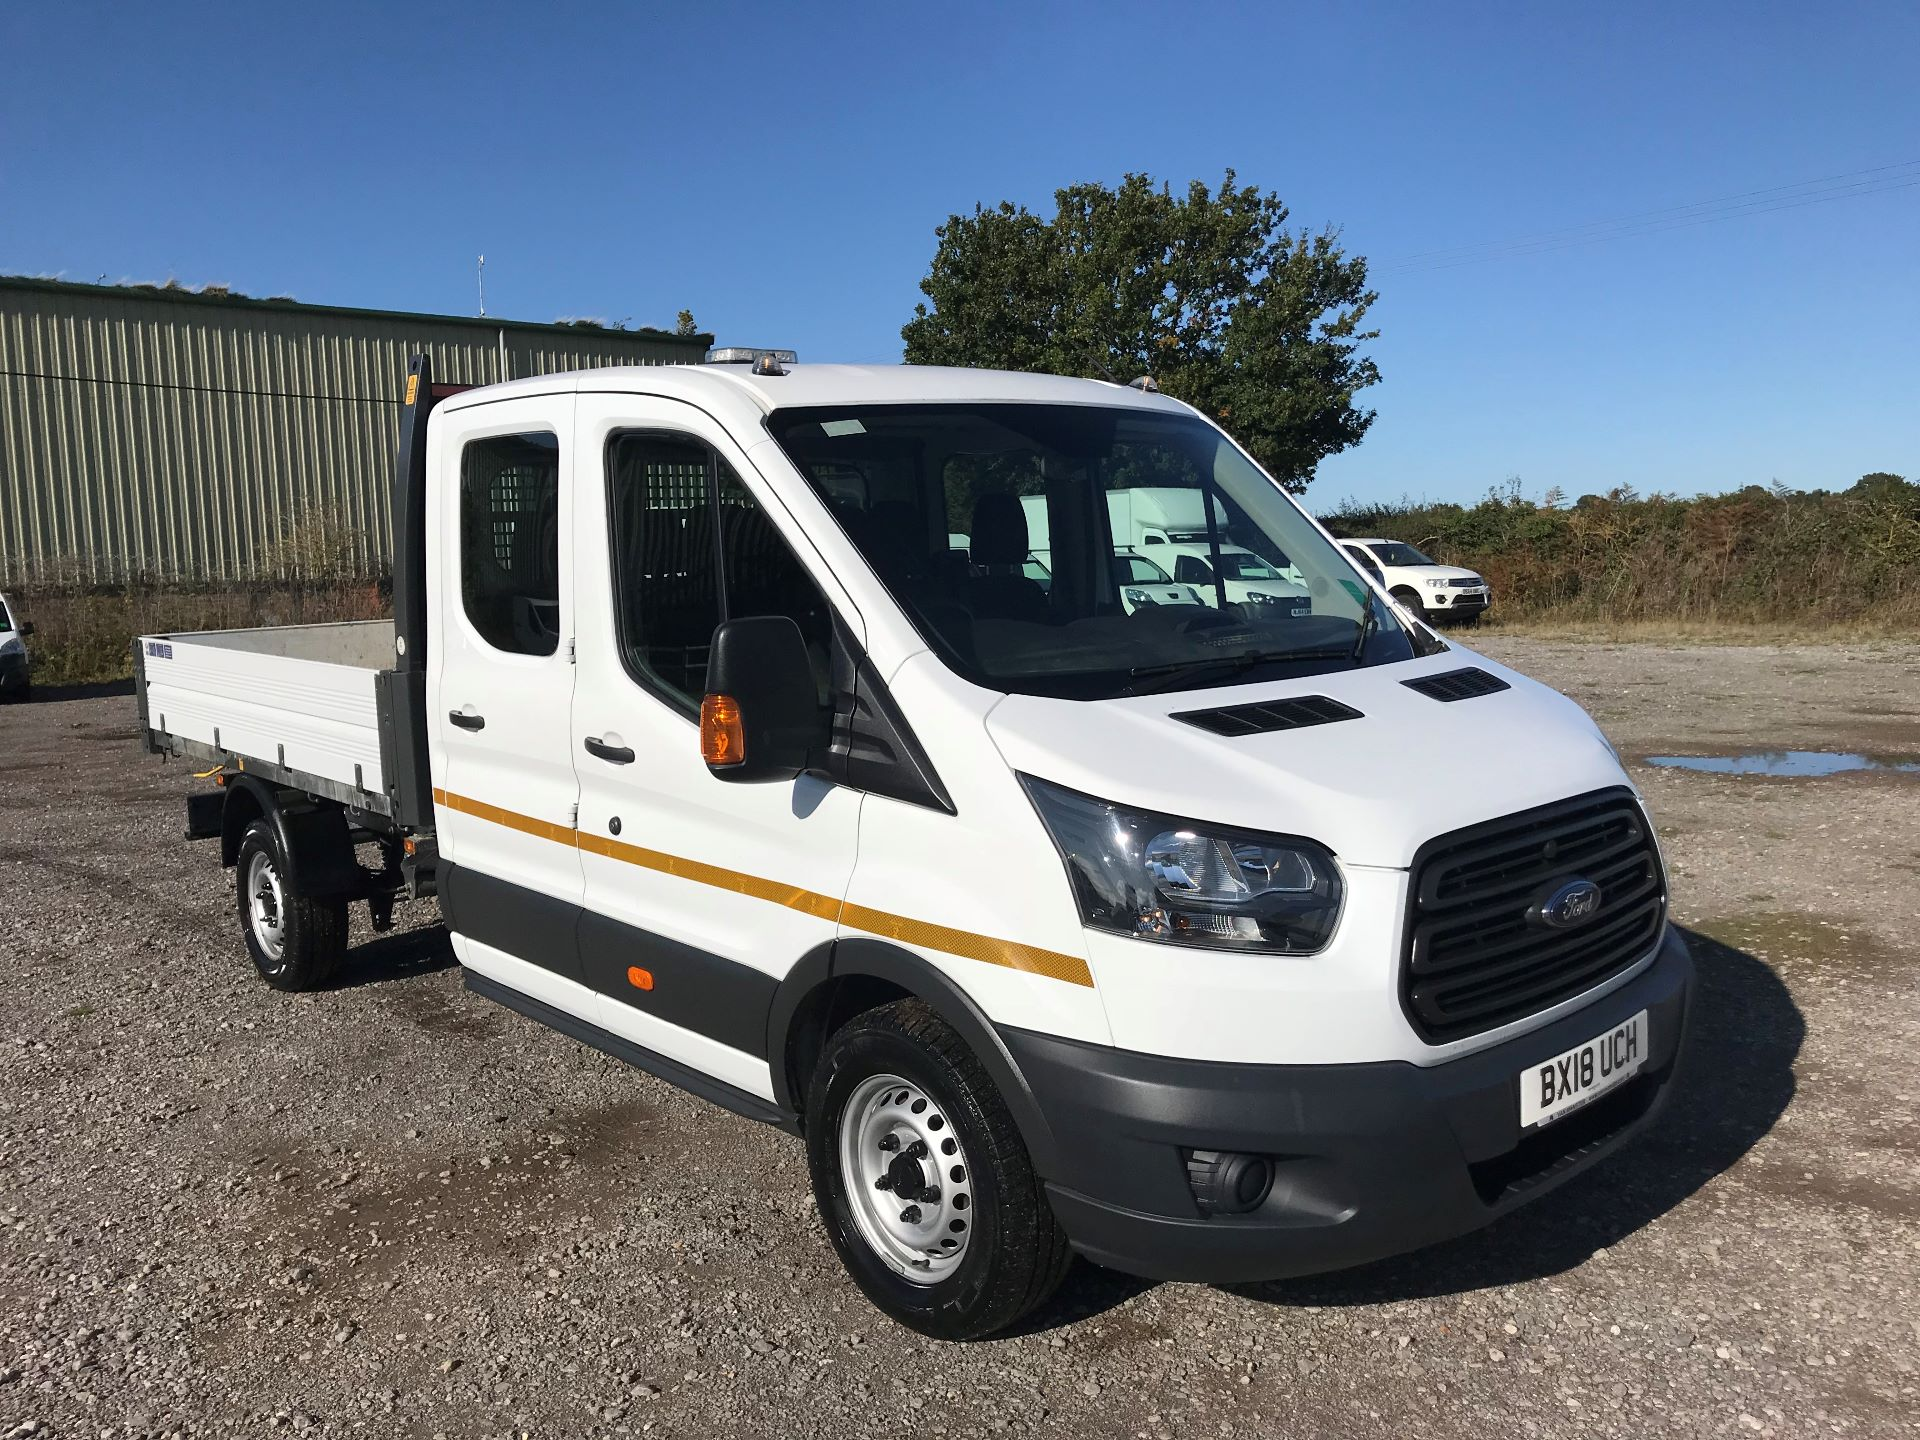 2018 Ford Transit 350 L3 DOUBLE CAB TIPPER 130PS EURO 6 (BX18UCH)